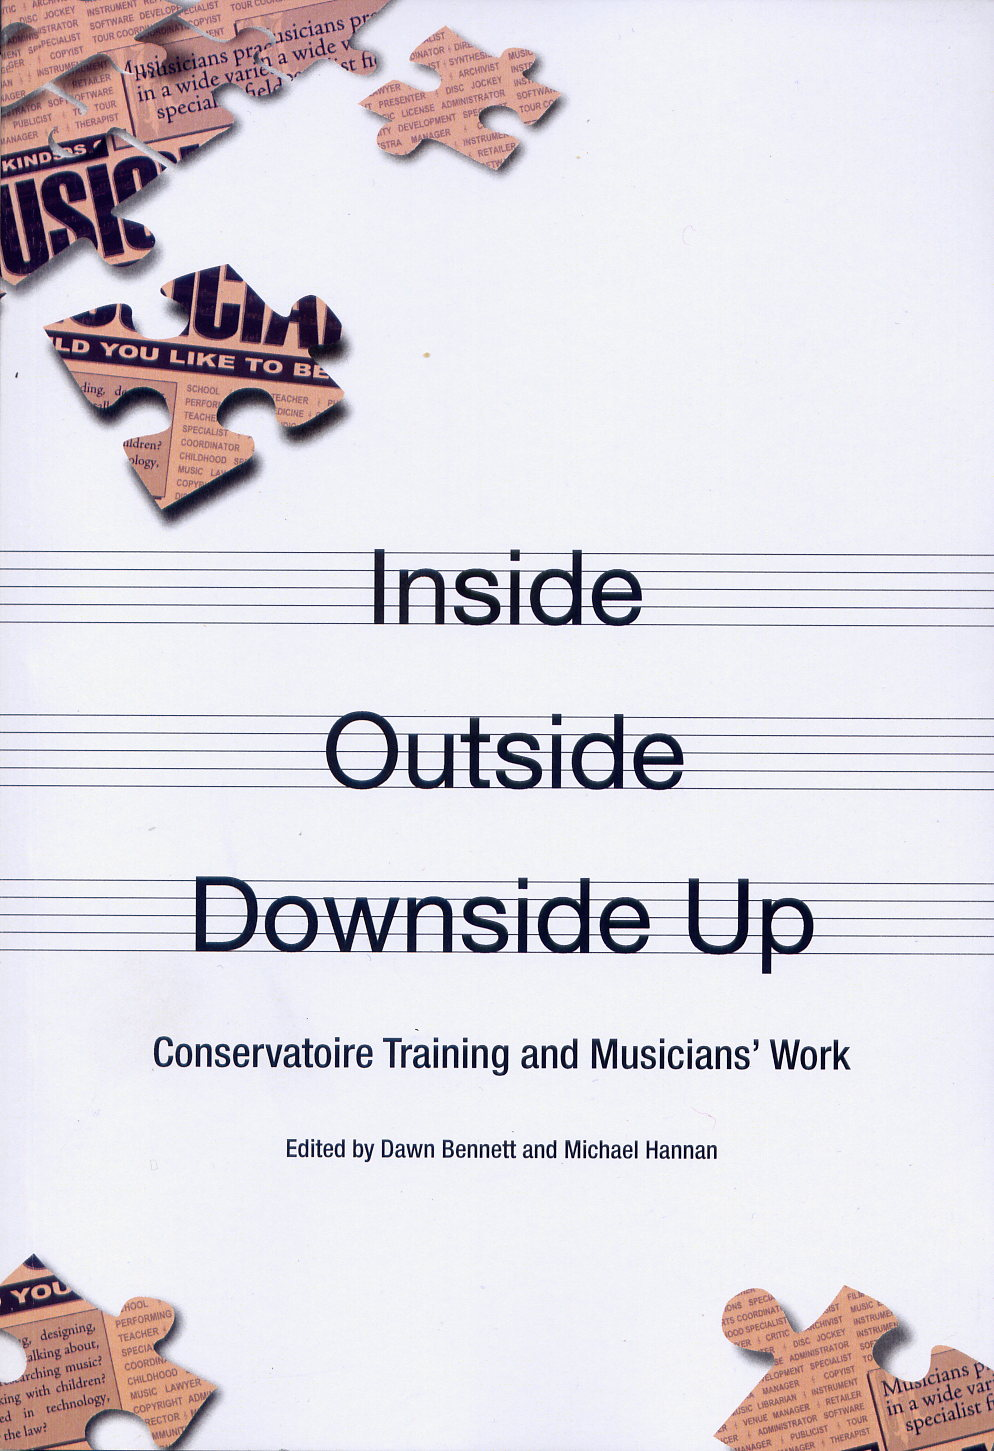 Inside Outside Downside Up book cover by Dawn Bennett and Michael Hannan